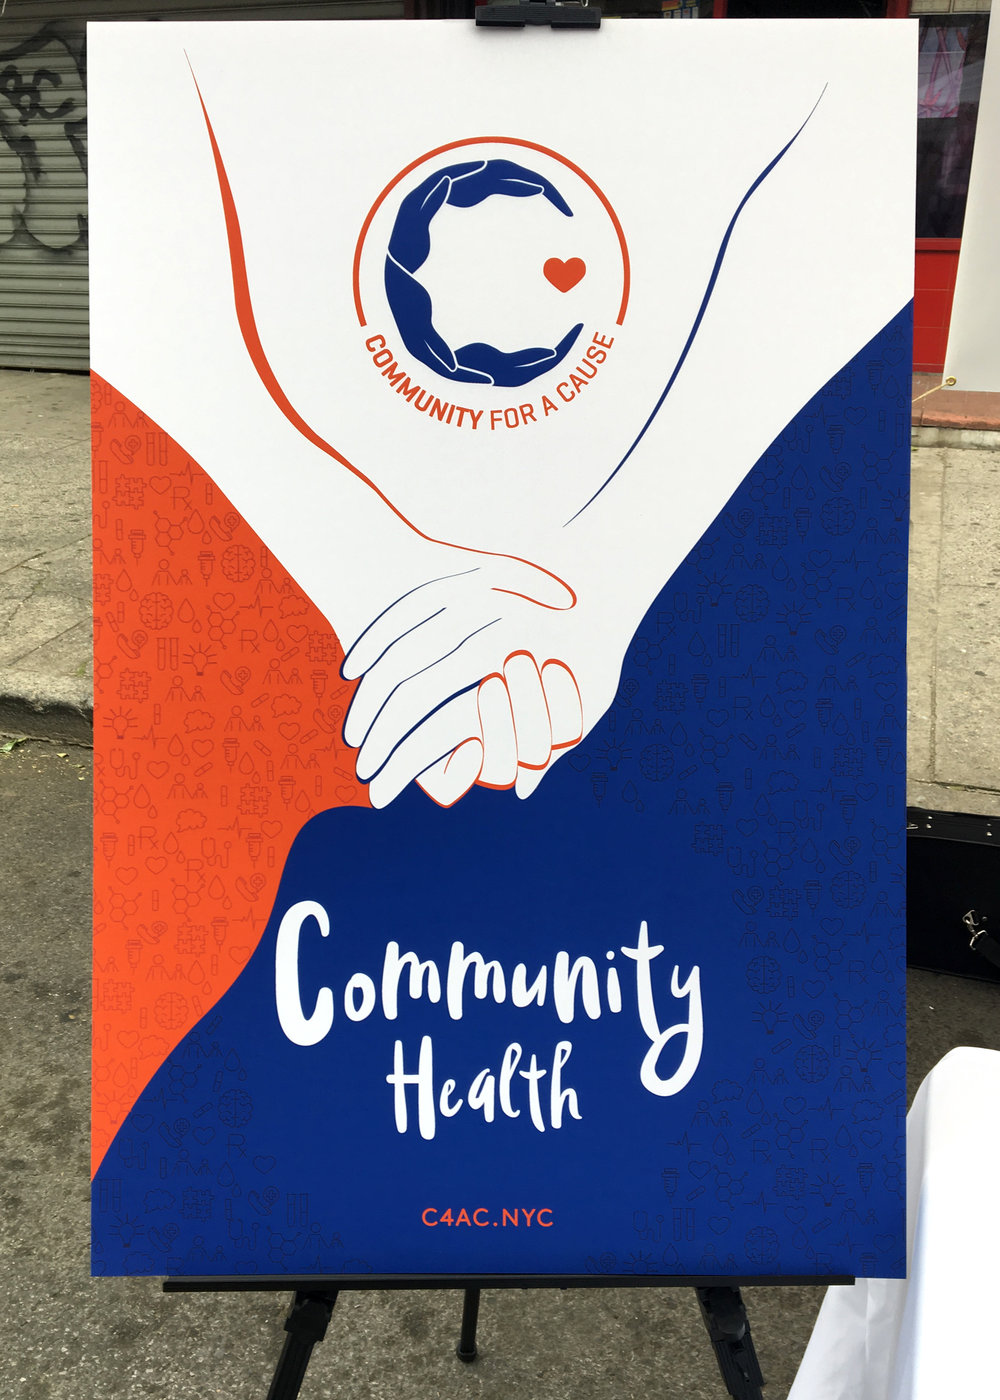 CommunityHealthPoster_photo.jpg